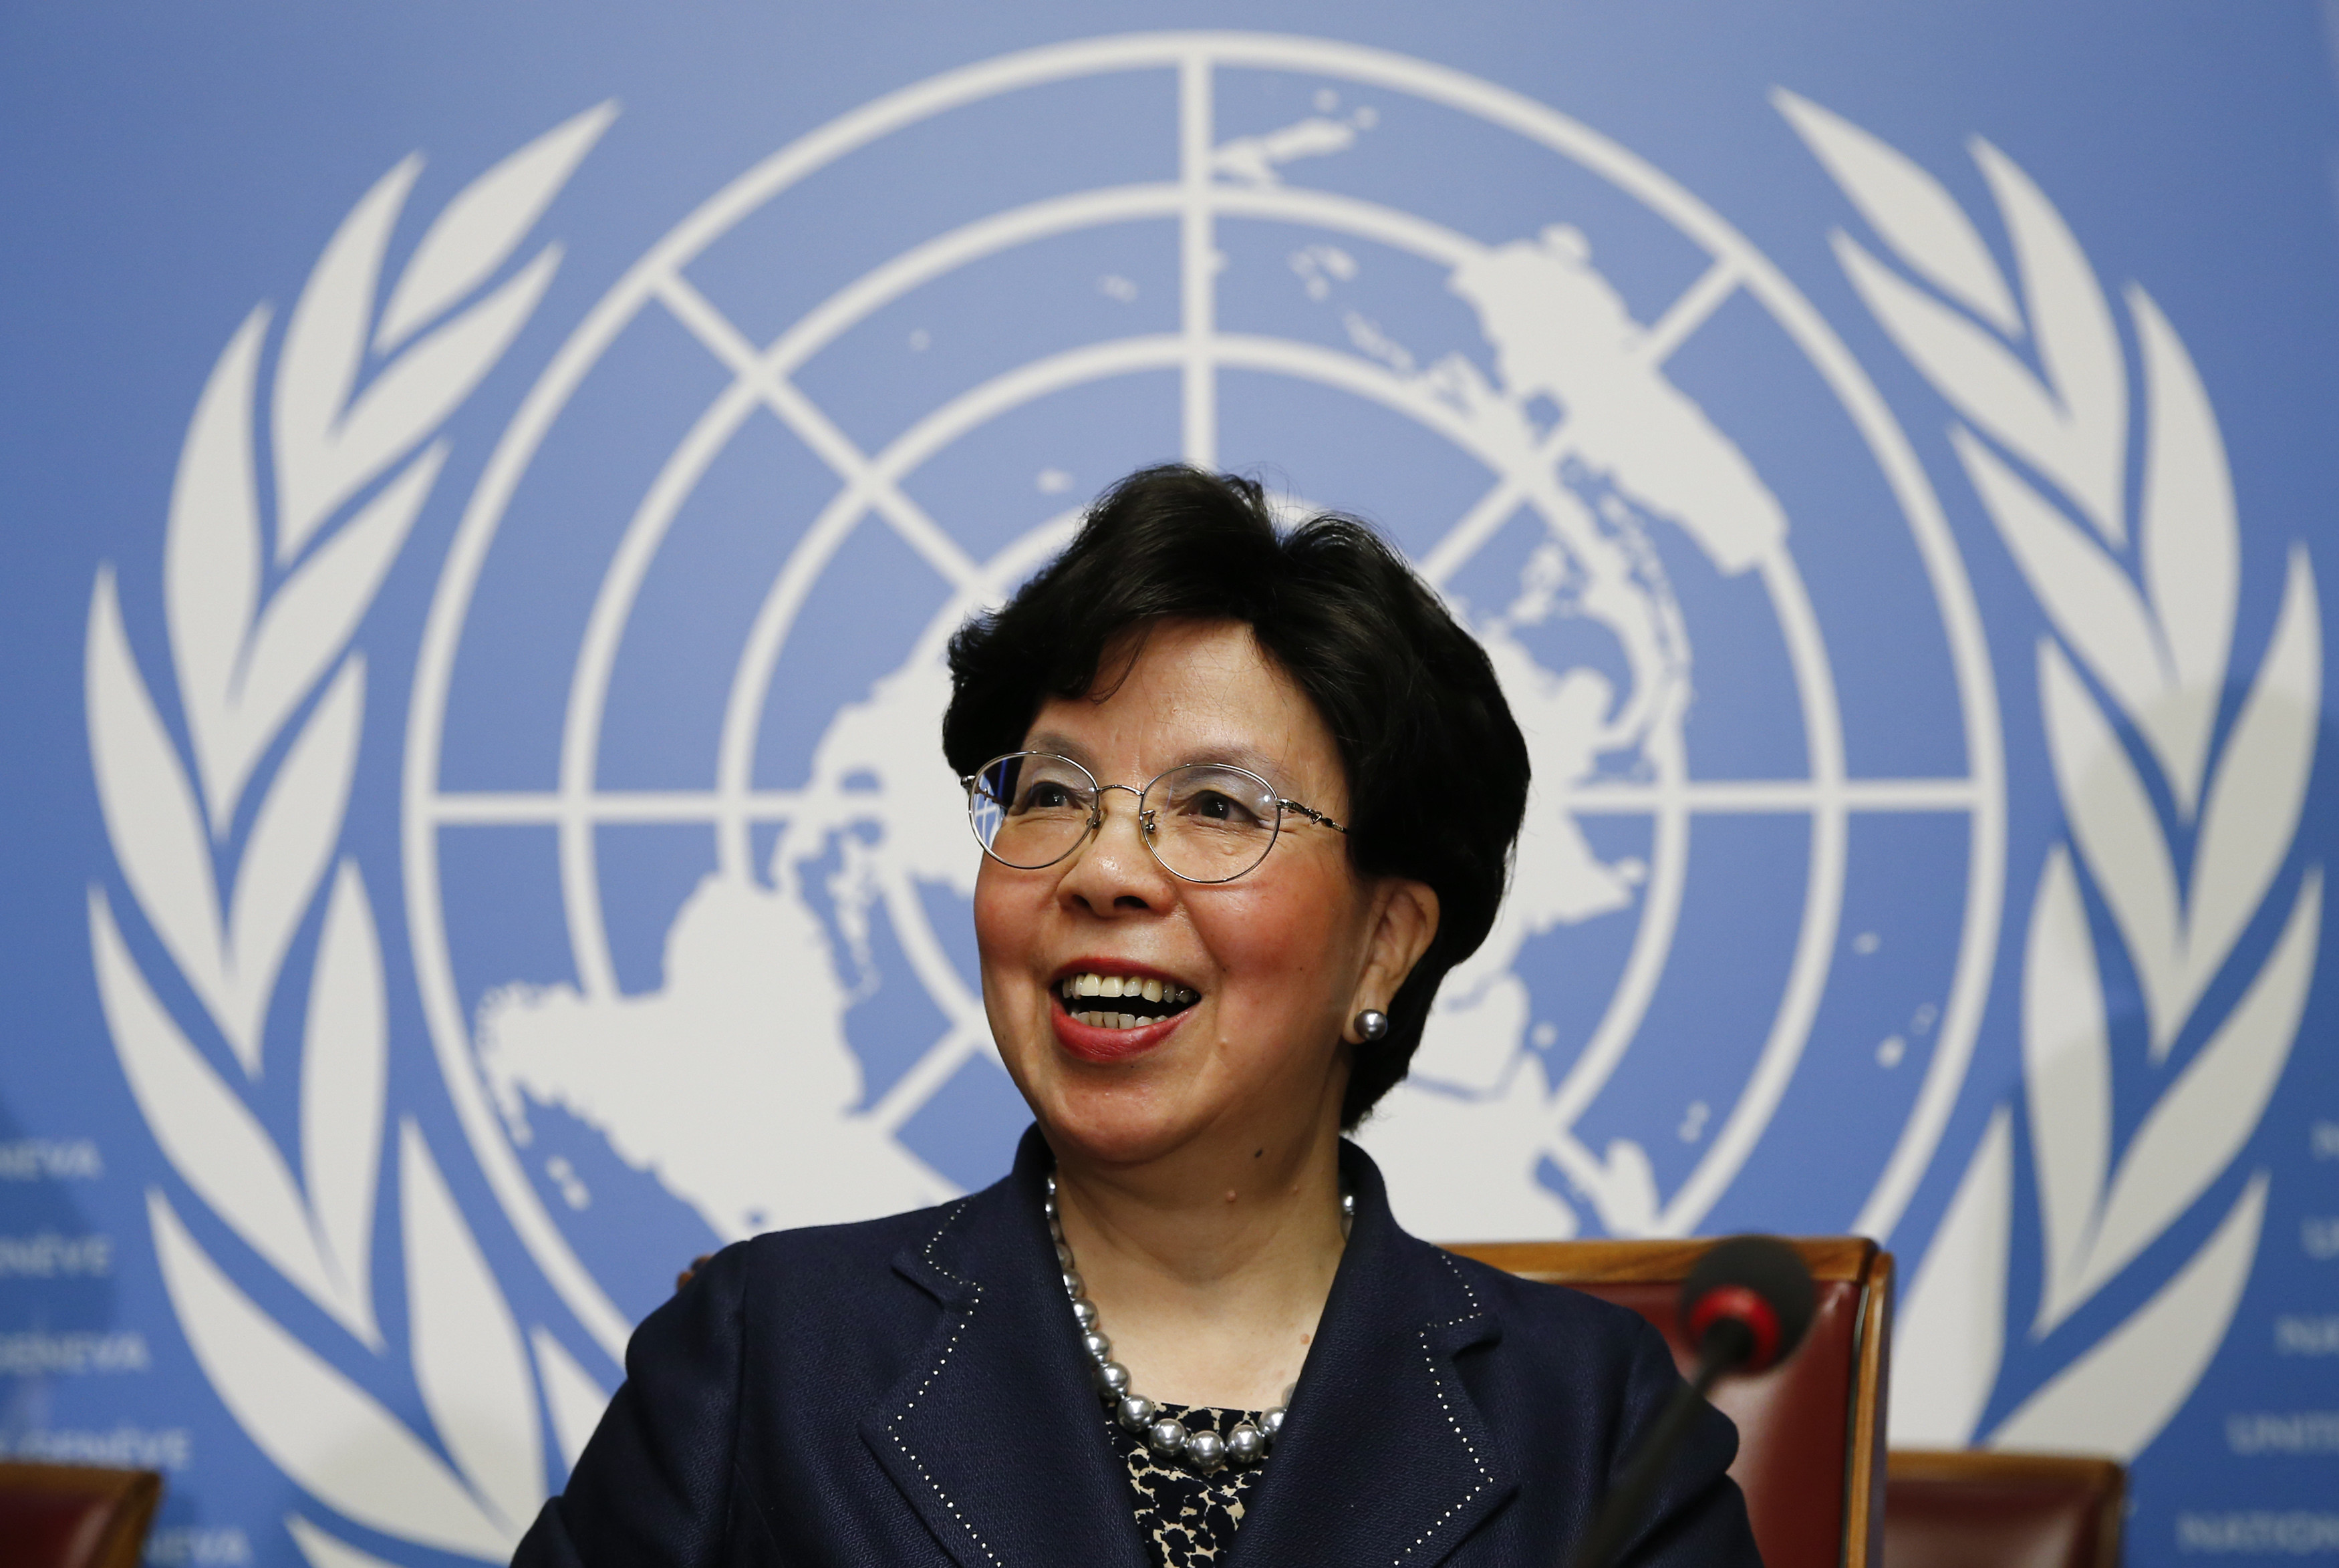 Margaret Chan, Director-General of the World Health Organization (WHO), smiles after a news conference ahead of the 69th World Health Assembly in Geneva, Switzerland May 17, 2016. REUTERS/Denis Balibouse - RTSEN8F